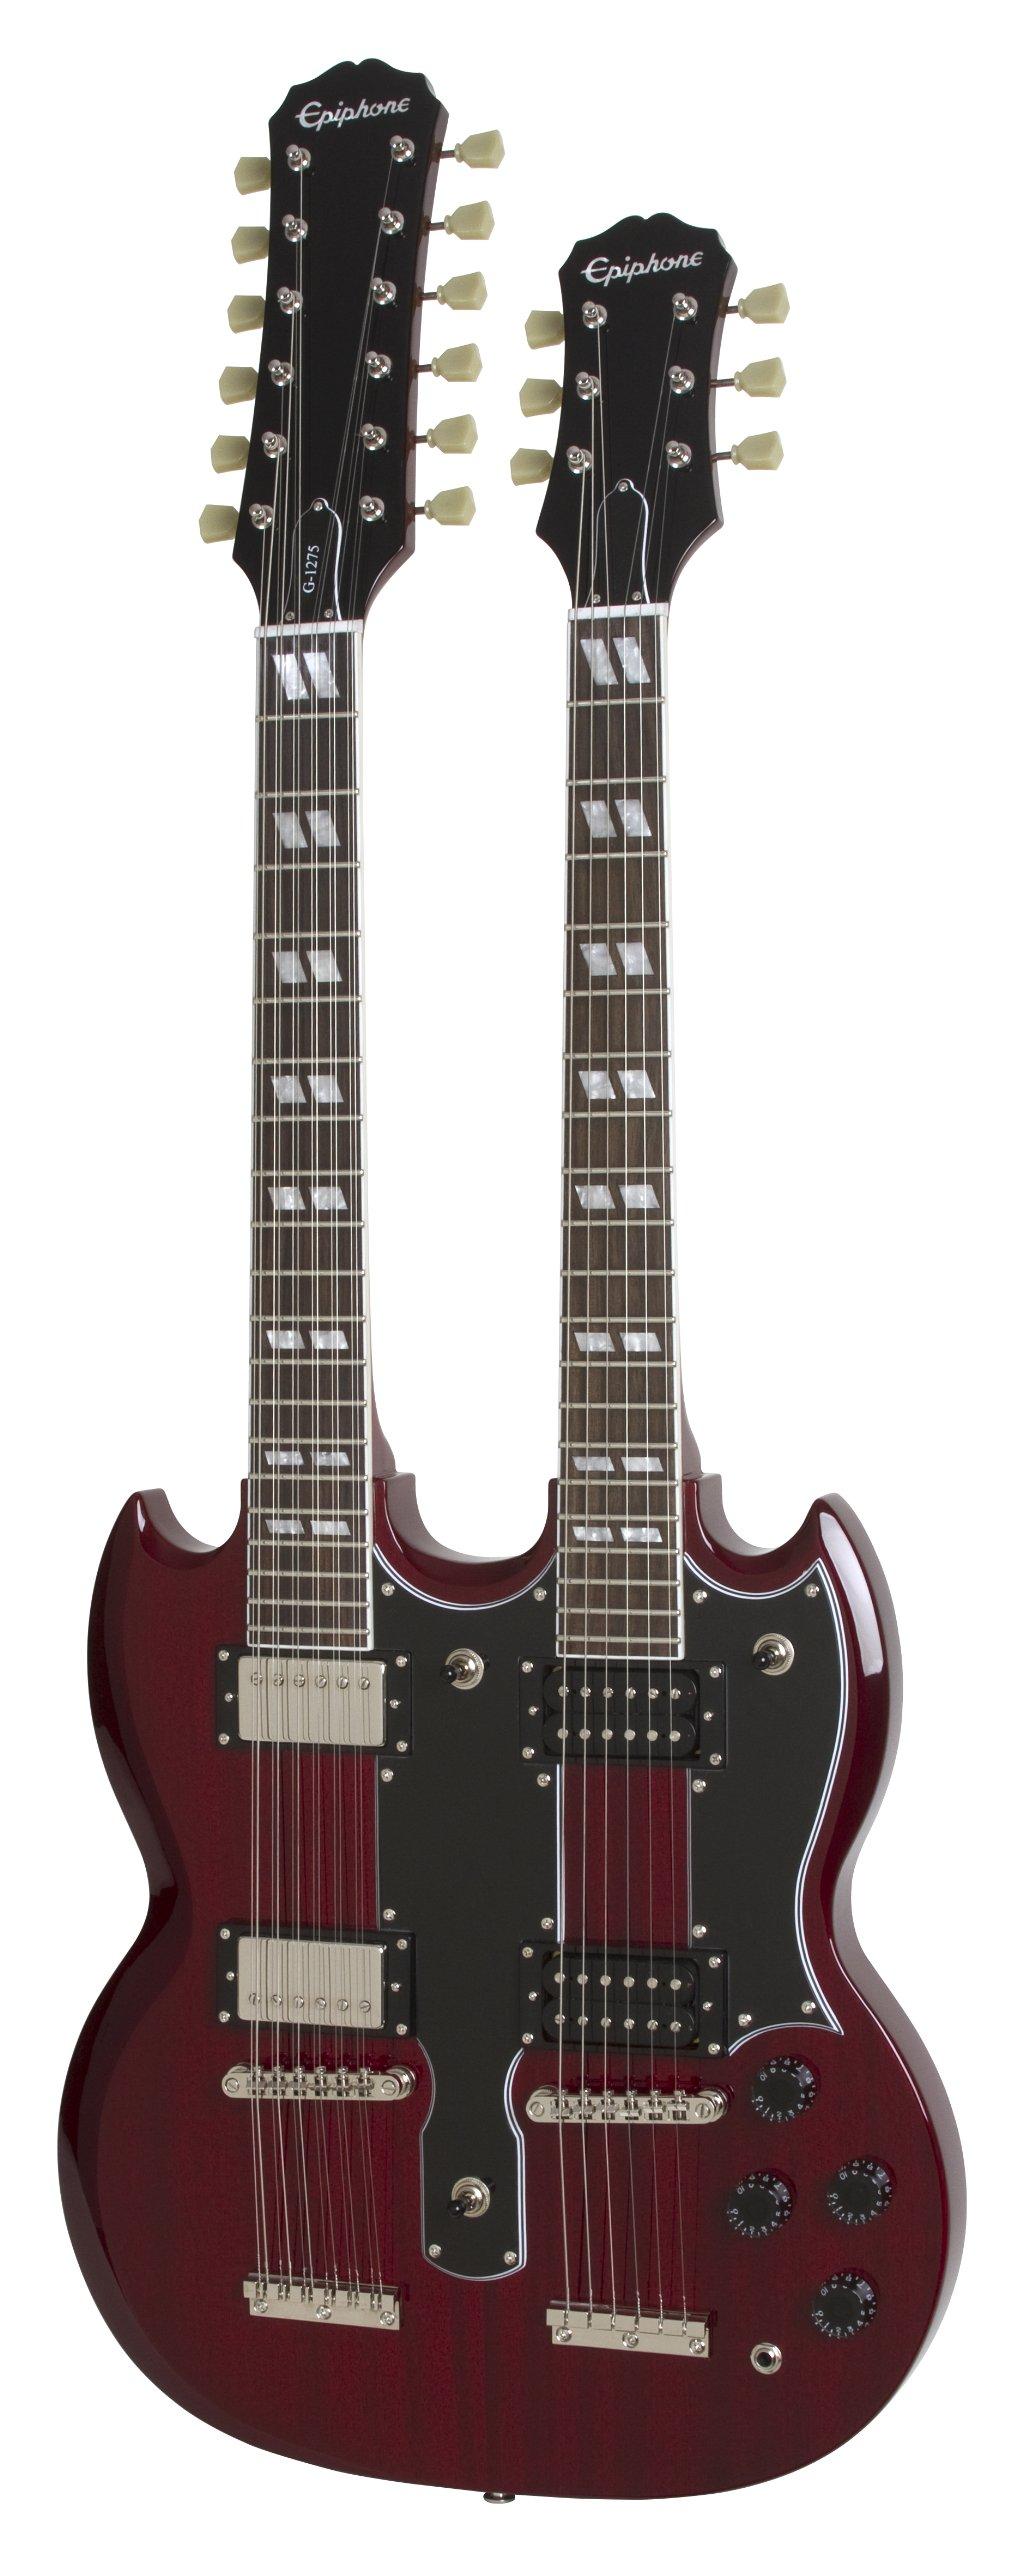 Cheap Epiphone EGDNCHNH3 Solid-Body Electric Guitar Cherry Black Friday & Cyber Monday 2019